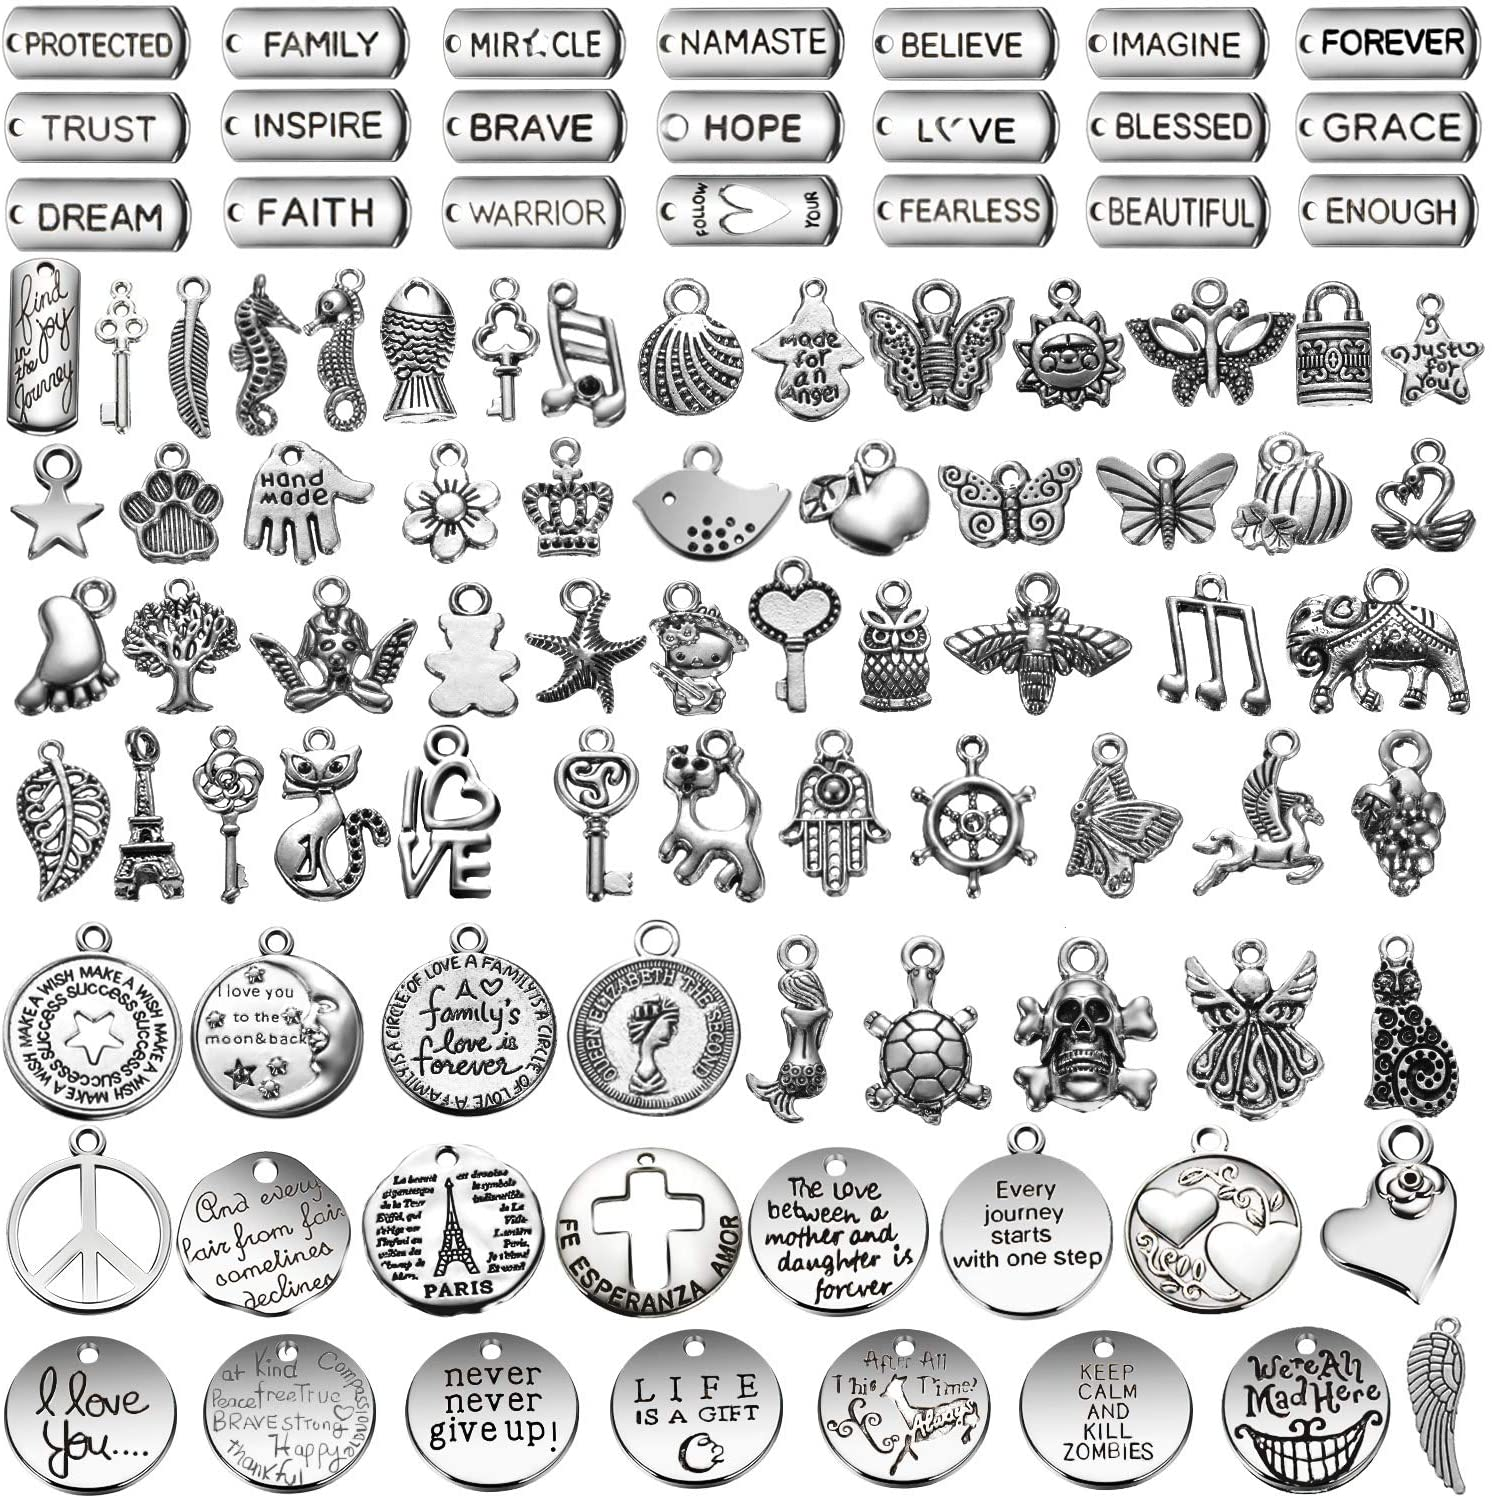 WILLBOND 100 Pieces Inspiration Words Jewelry Charms Antique Silver Craft Pendants Beads Charms Pendants for Jewelry Making Craft Pendant Supplies